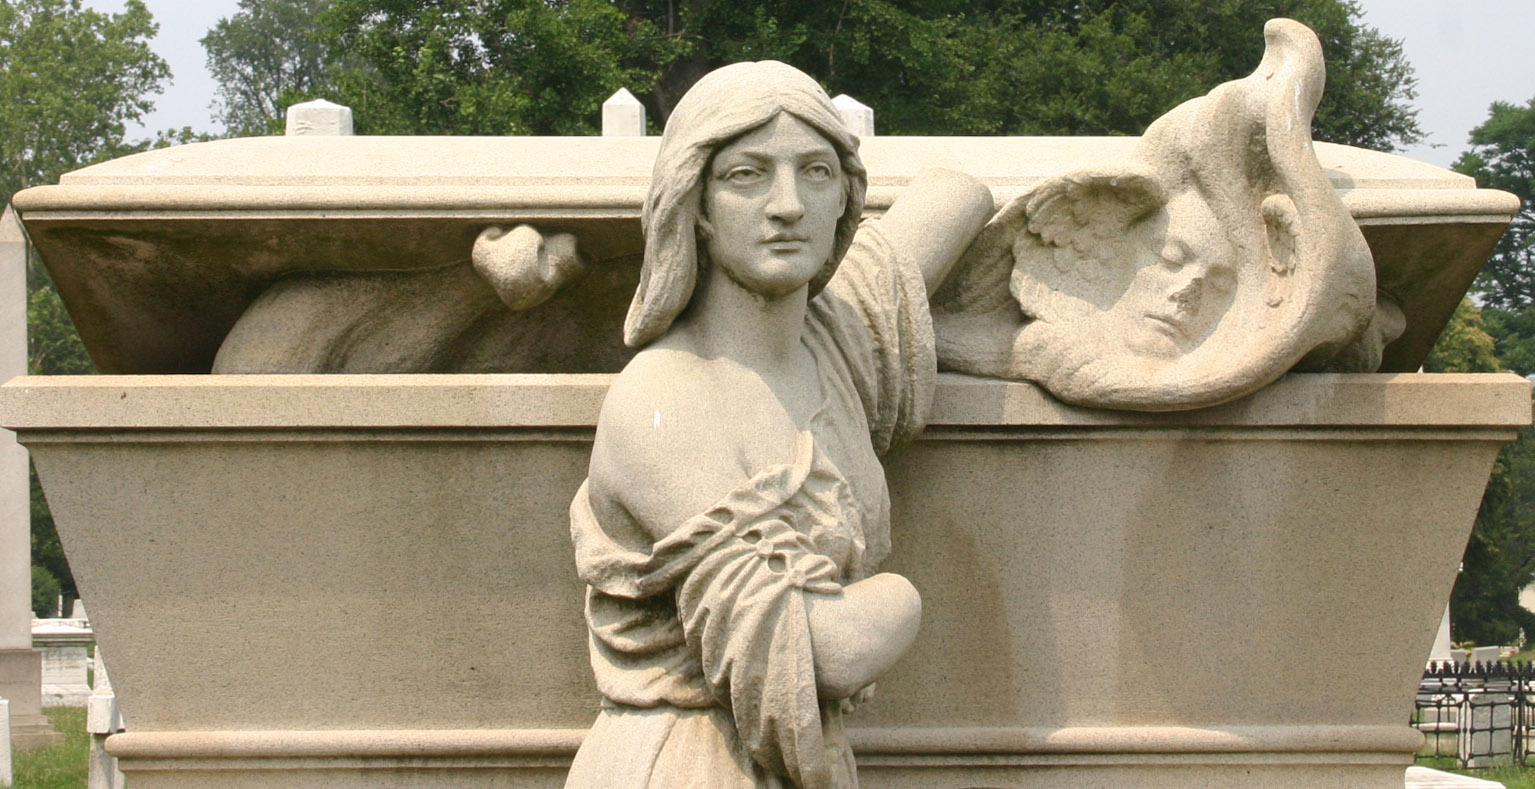 This is a perfect example of the elaborate funerary art one will encounter when visiting Laurel Hill.